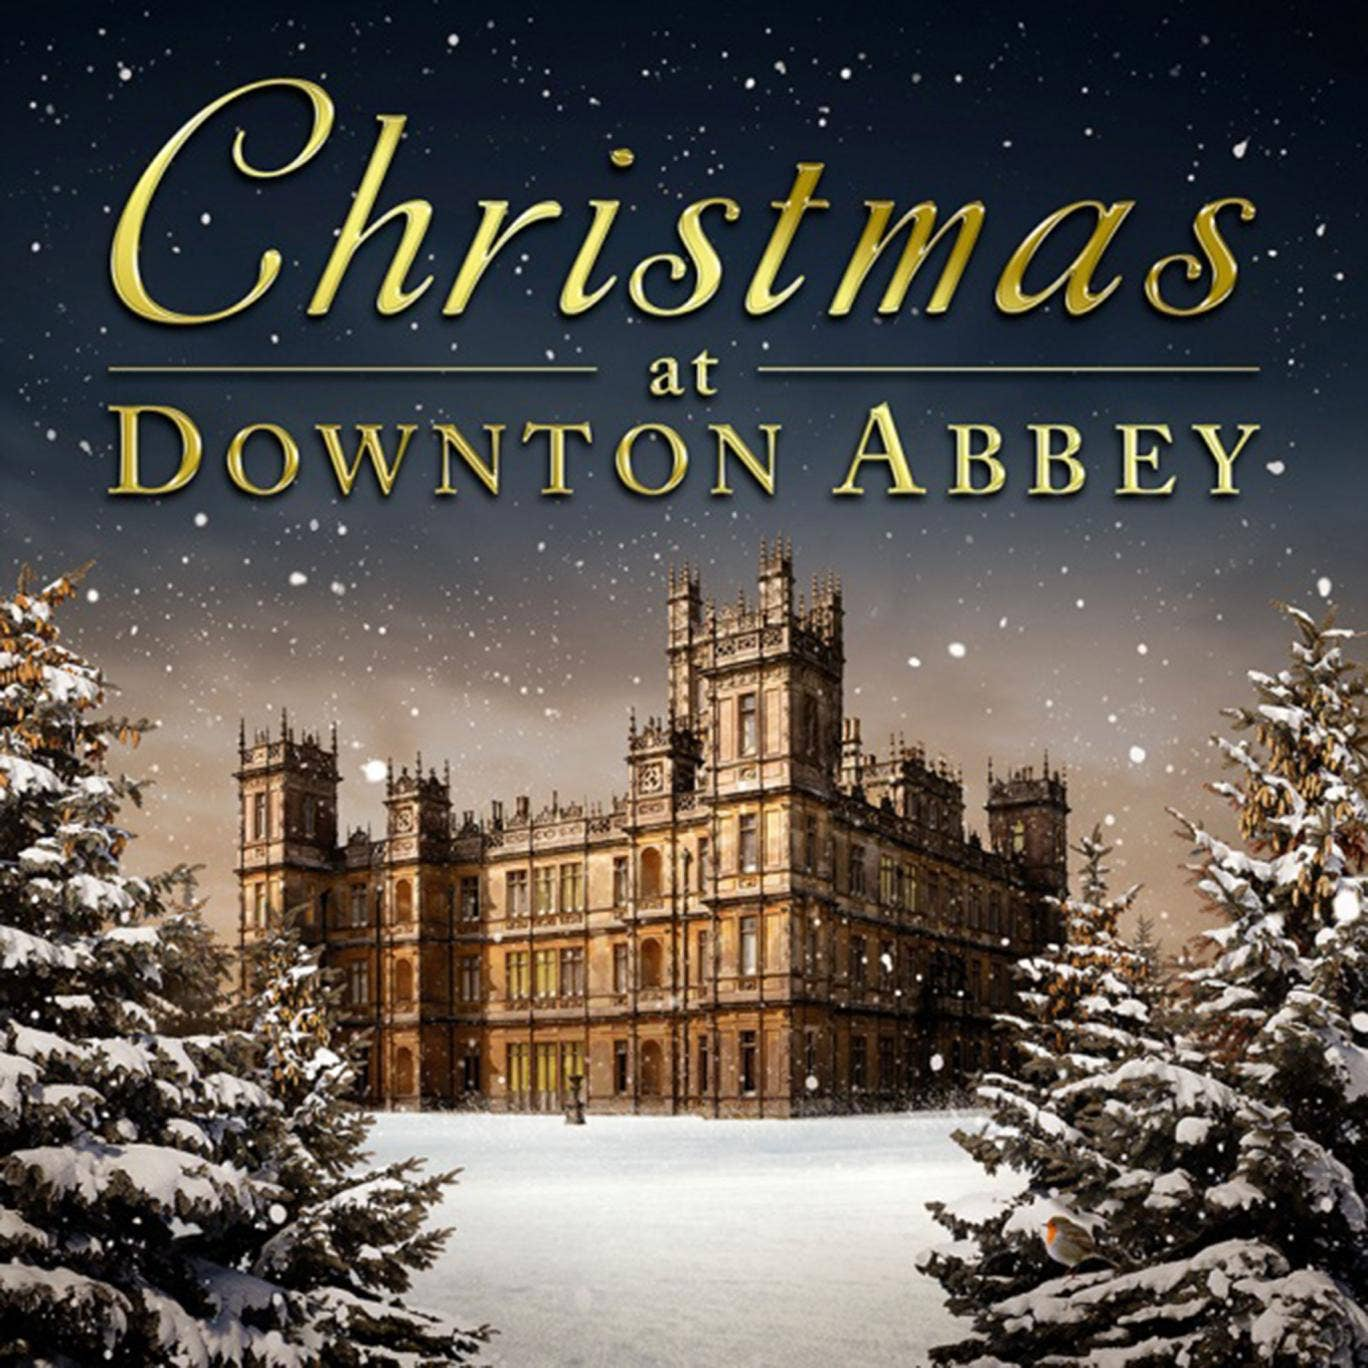 downton abbey christmas album featuring elizabeth mcgovern to be released in november the independent - Downton Abbey Christmas Special